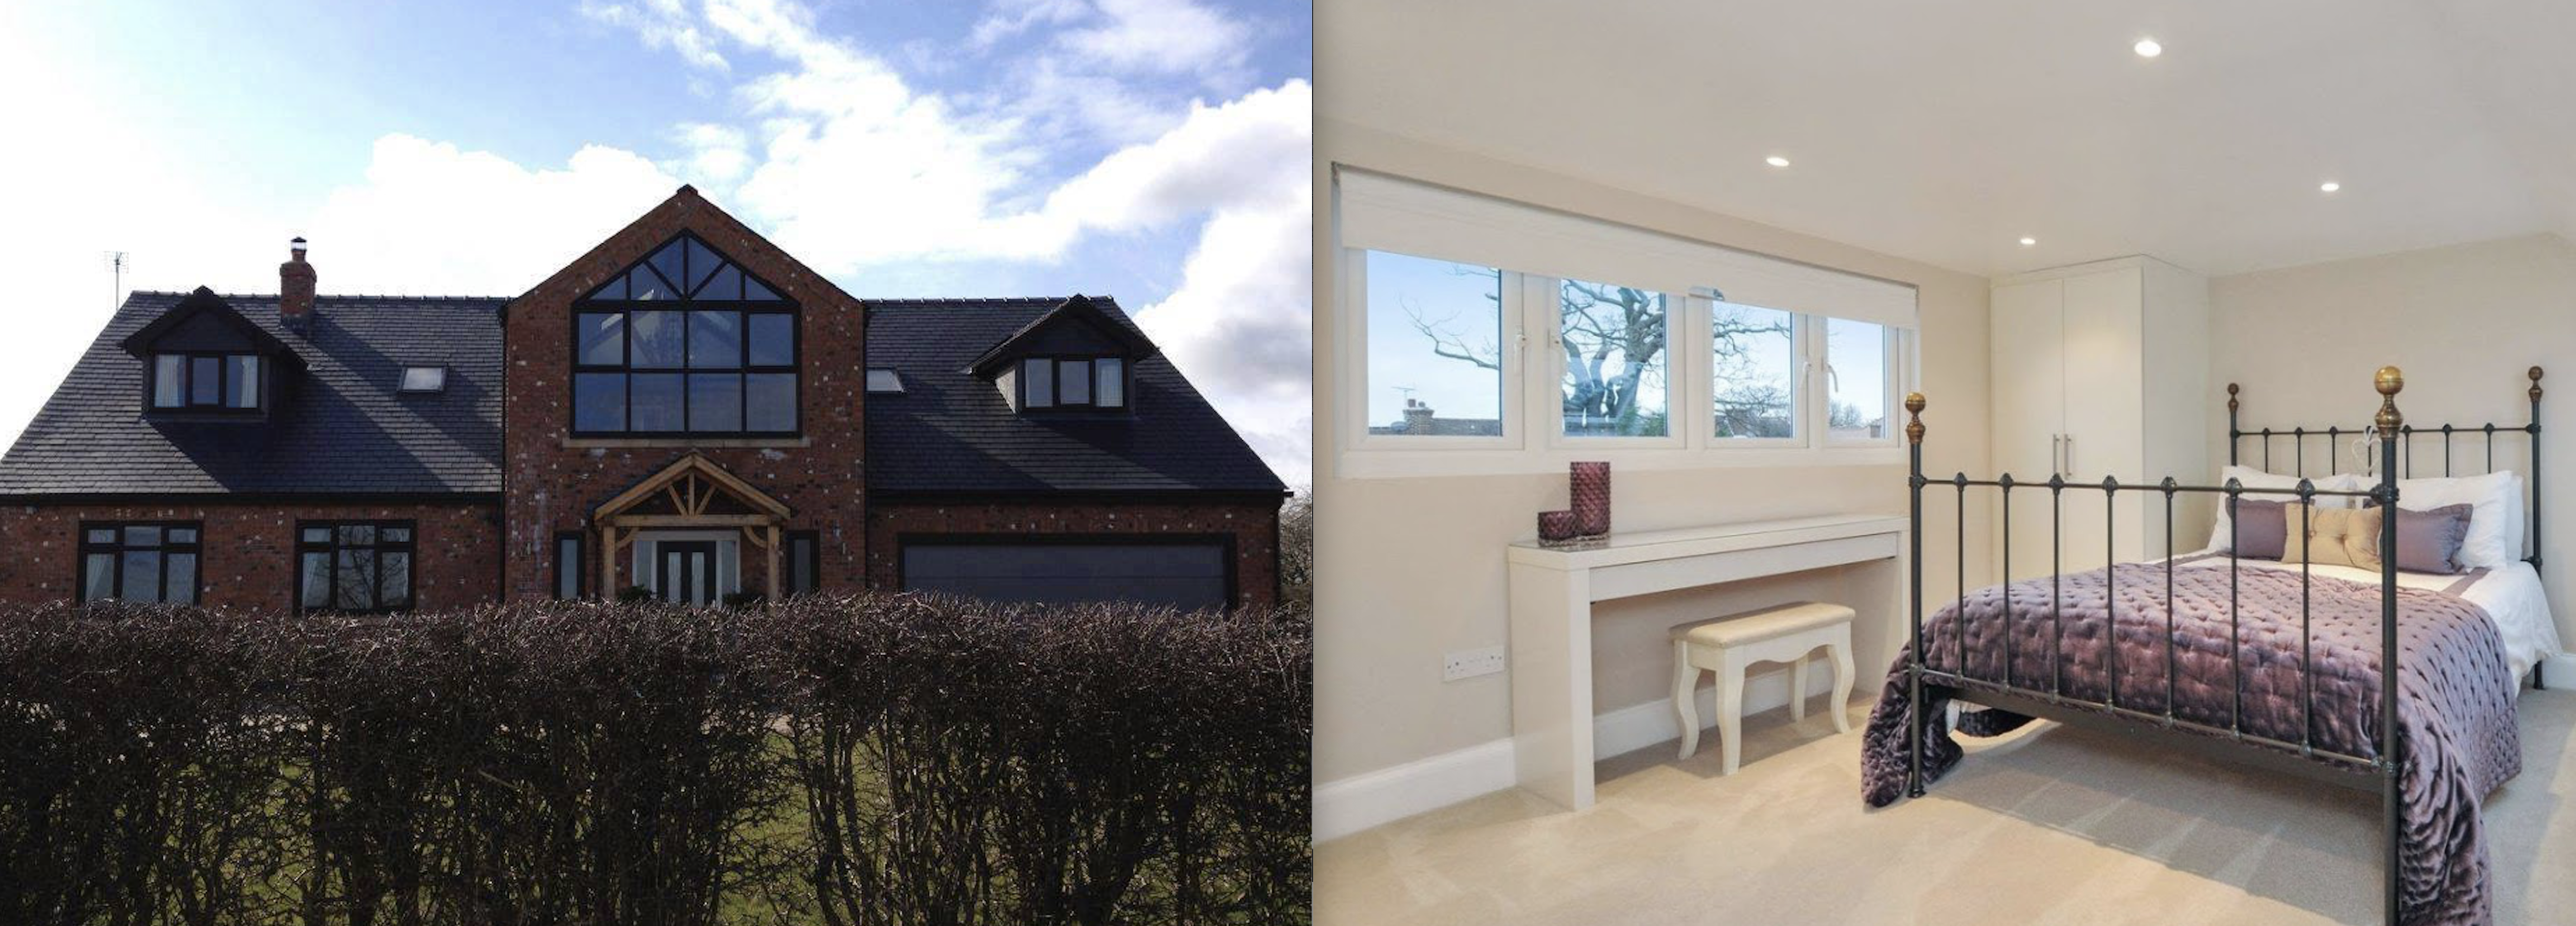 Beautiful Dormer loft conversion in Mossley, creating a new master bedroom with private bathroom, walk in wardrobe and stunning new oak staircase with Velux polyurethane SK06 GPU windows.